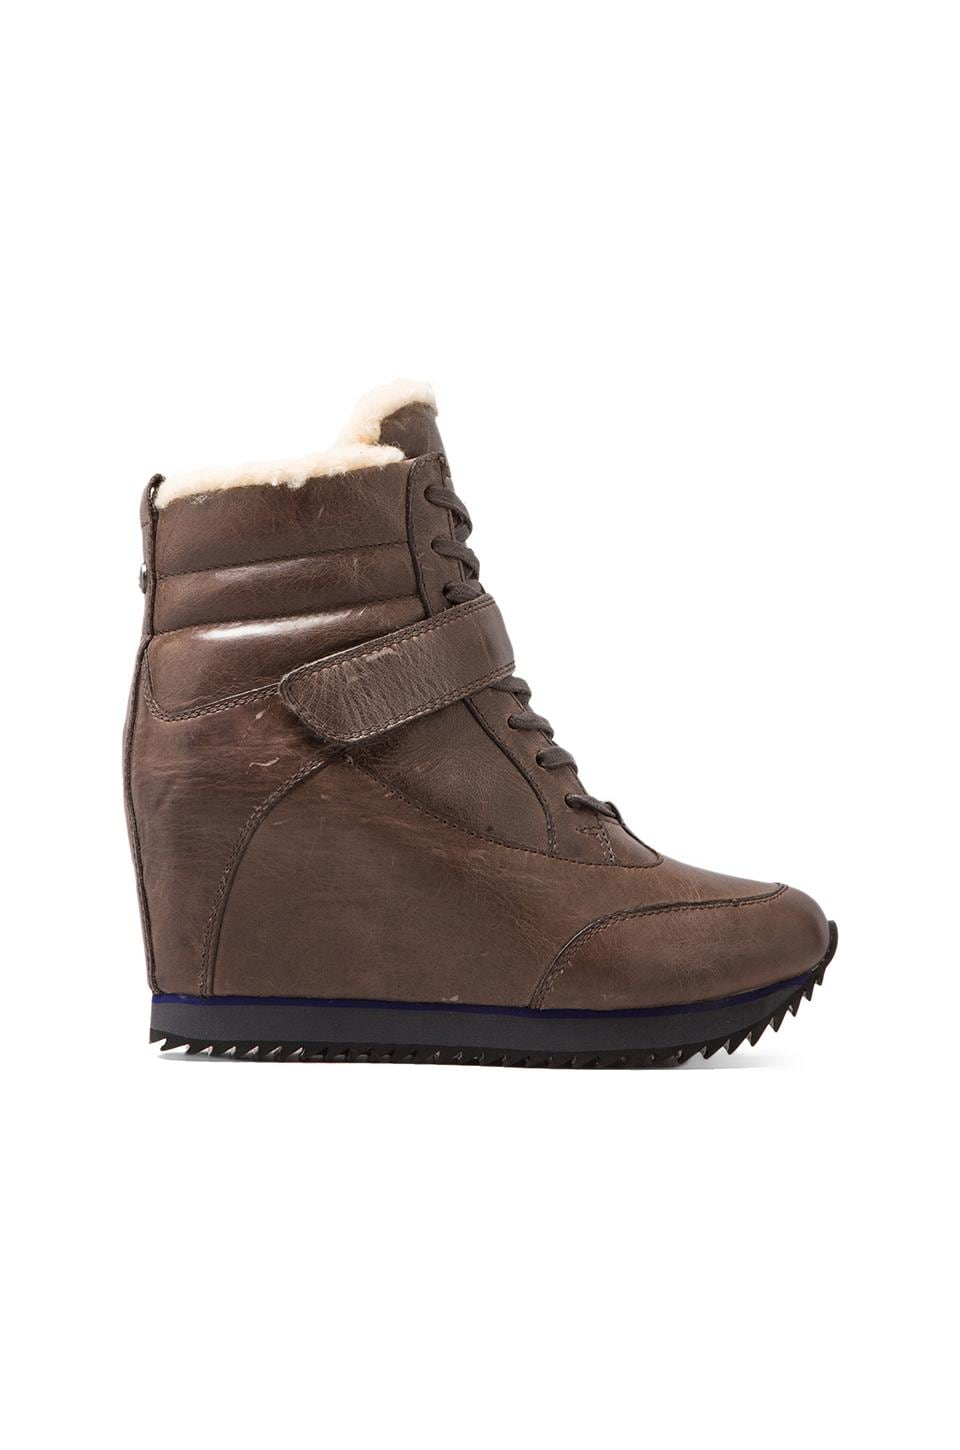 Koolaburra Snow Jog Wedge Sneaker with Sheep Wool in Monk Brown